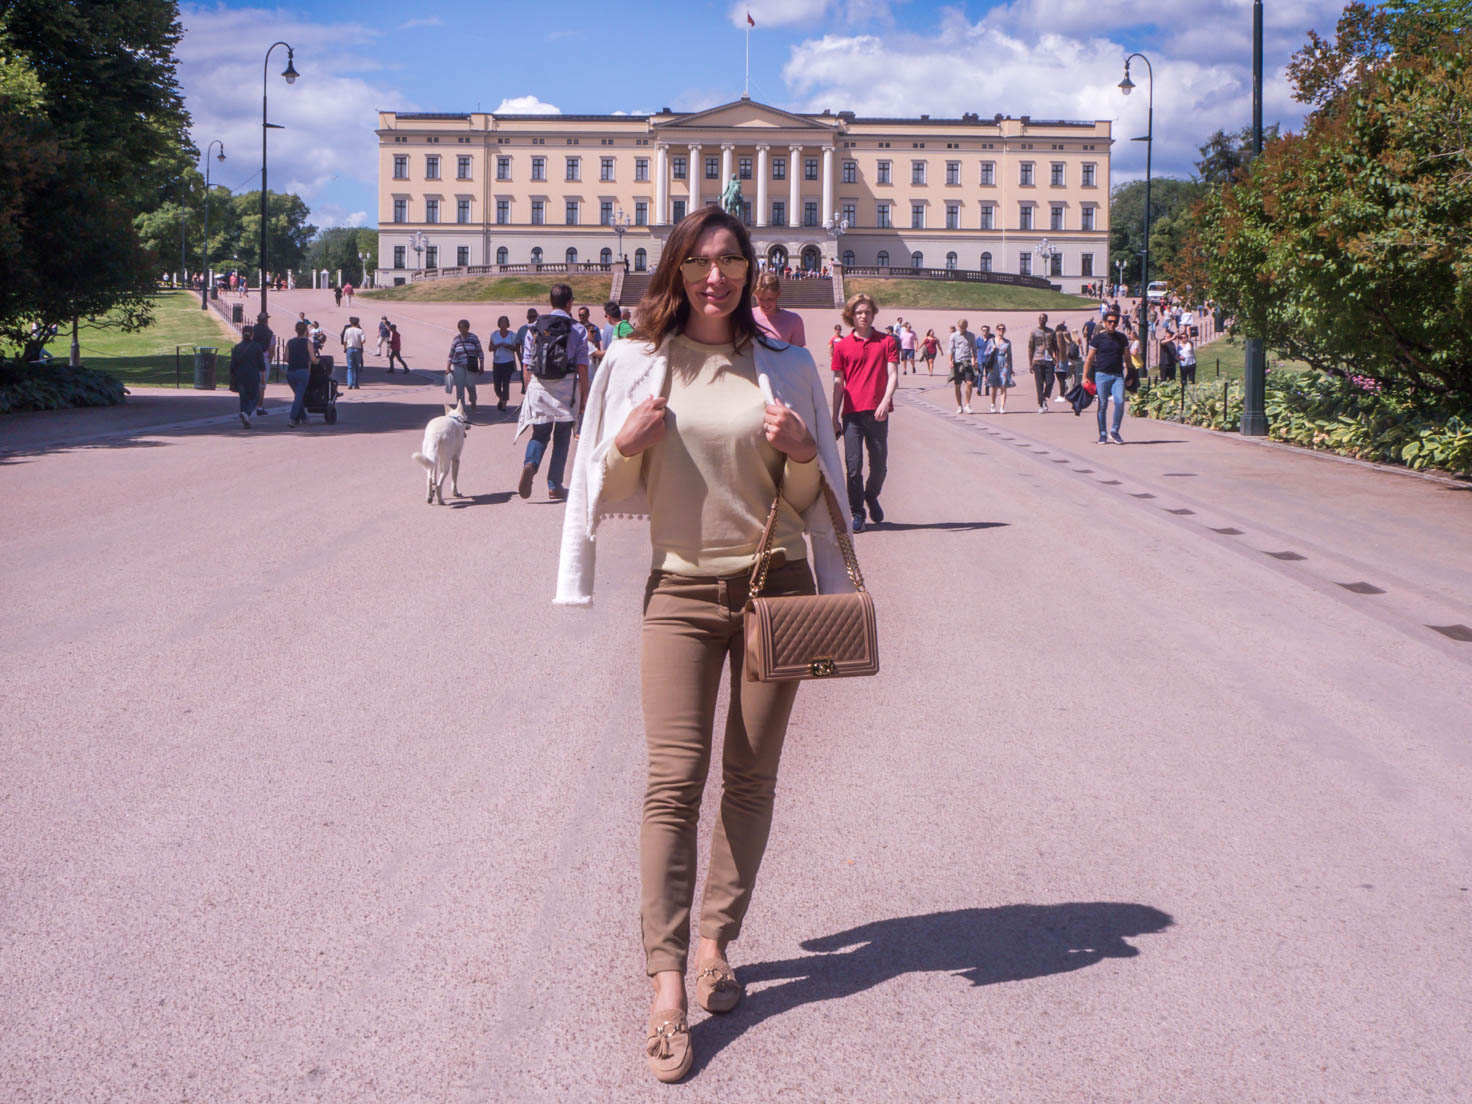 Petra from Chic Journal in Oslo